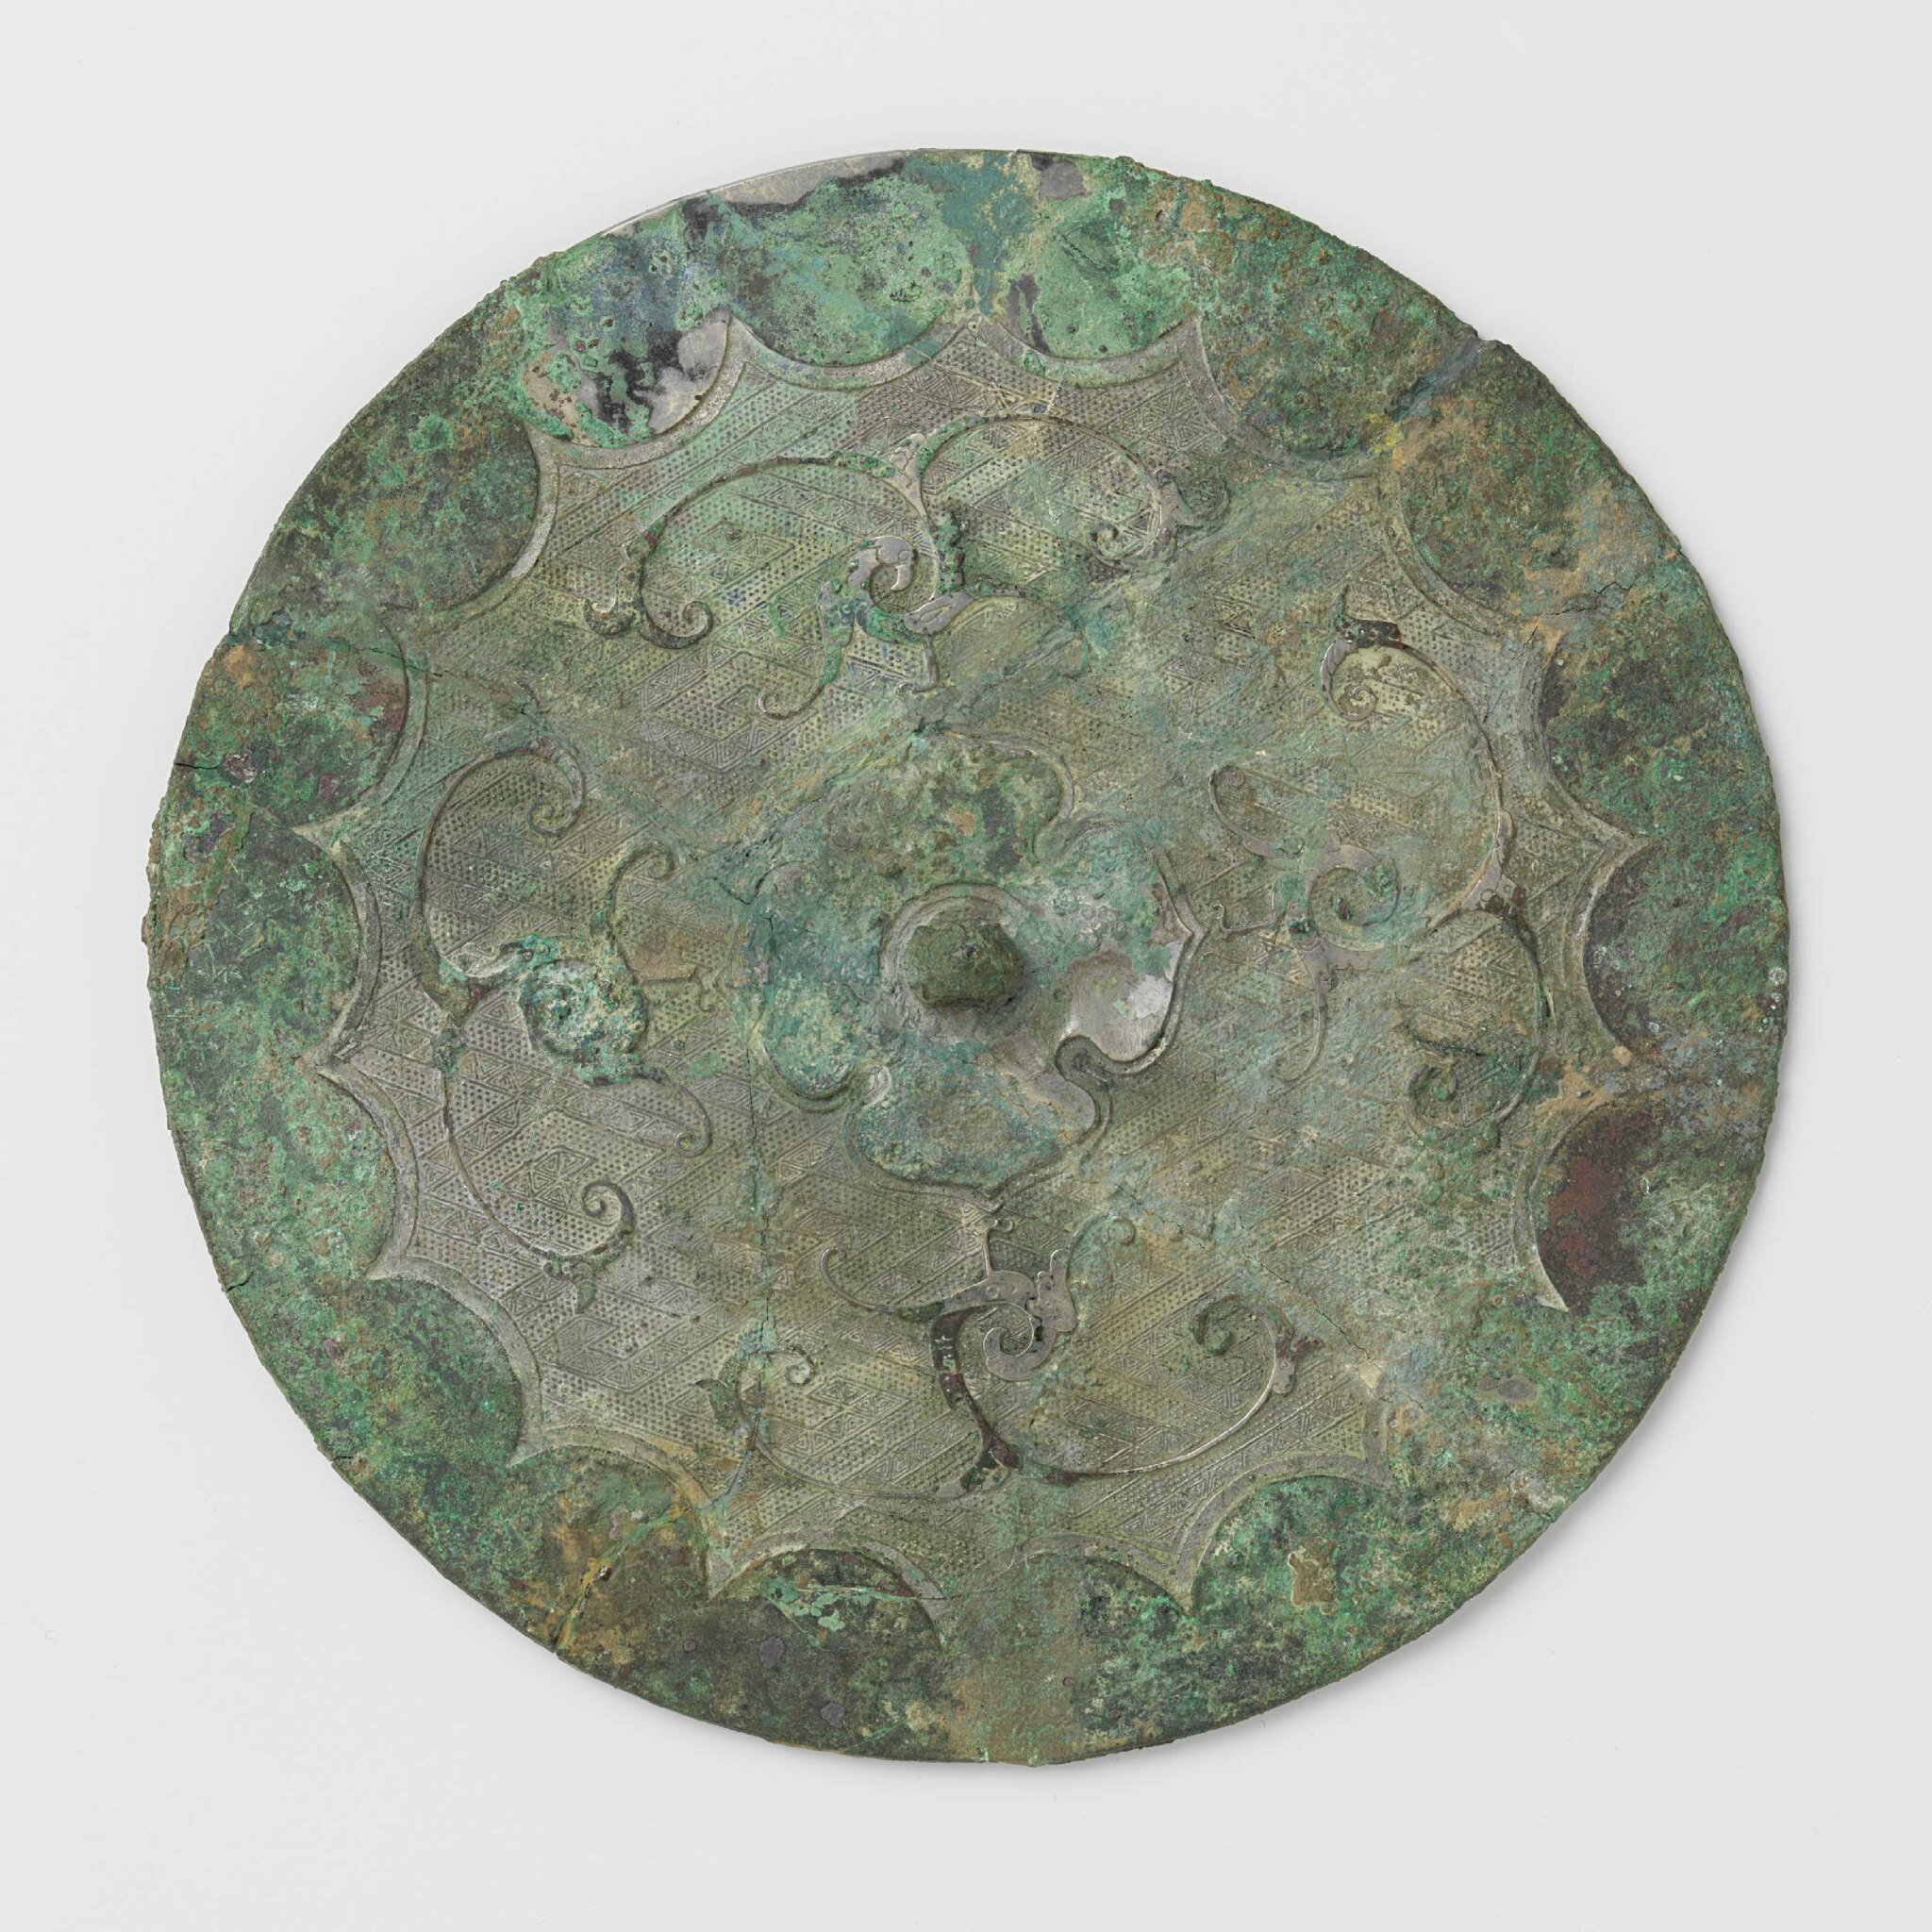 Bronze mirror with scalloped edge, four birds and arabesques, Warring States Period, 500-200 BCE